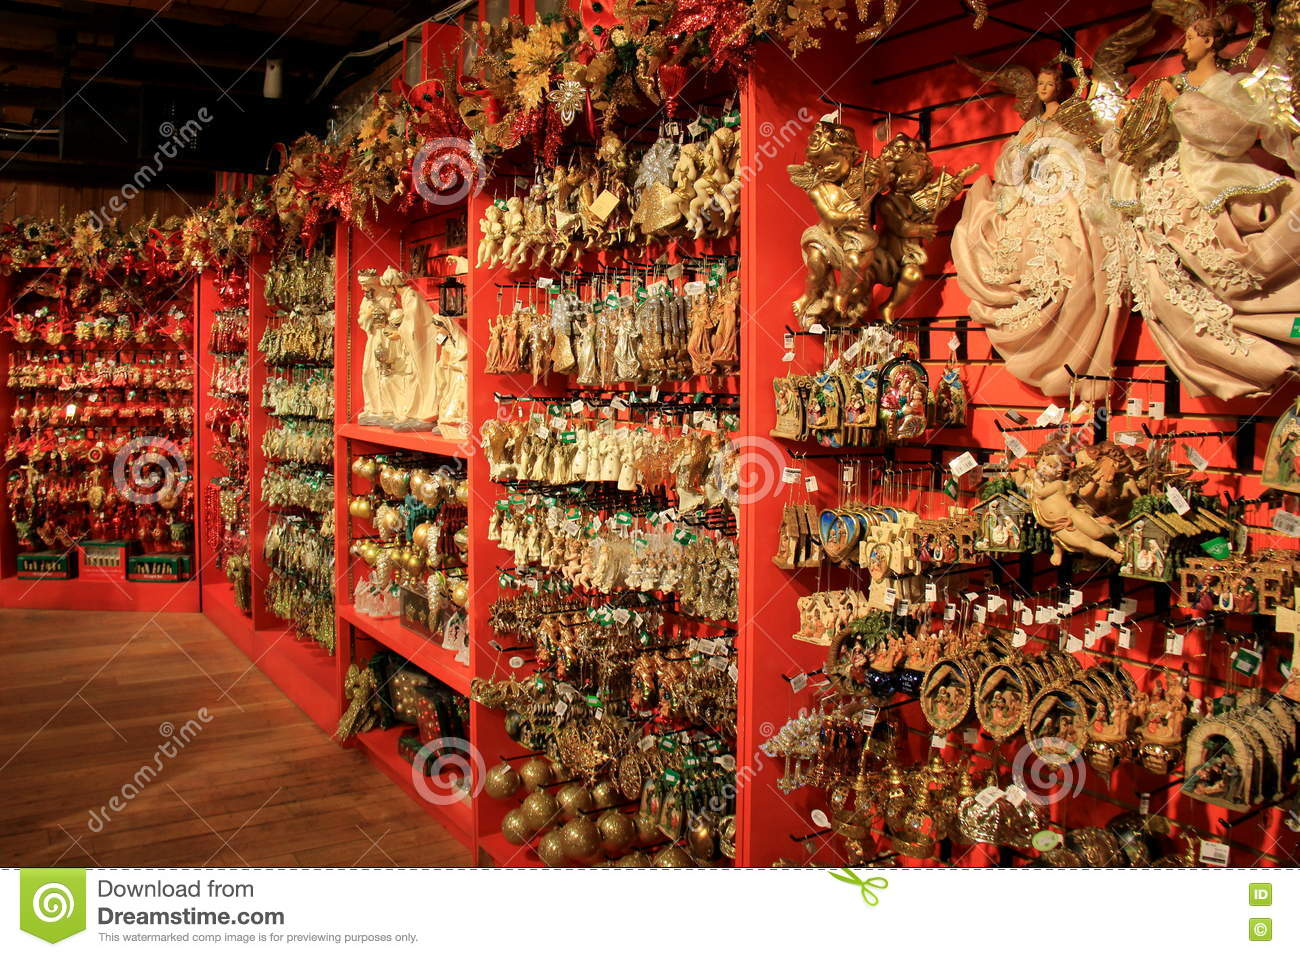 Vast array of holiday ornaments on display in the for The christmas shop